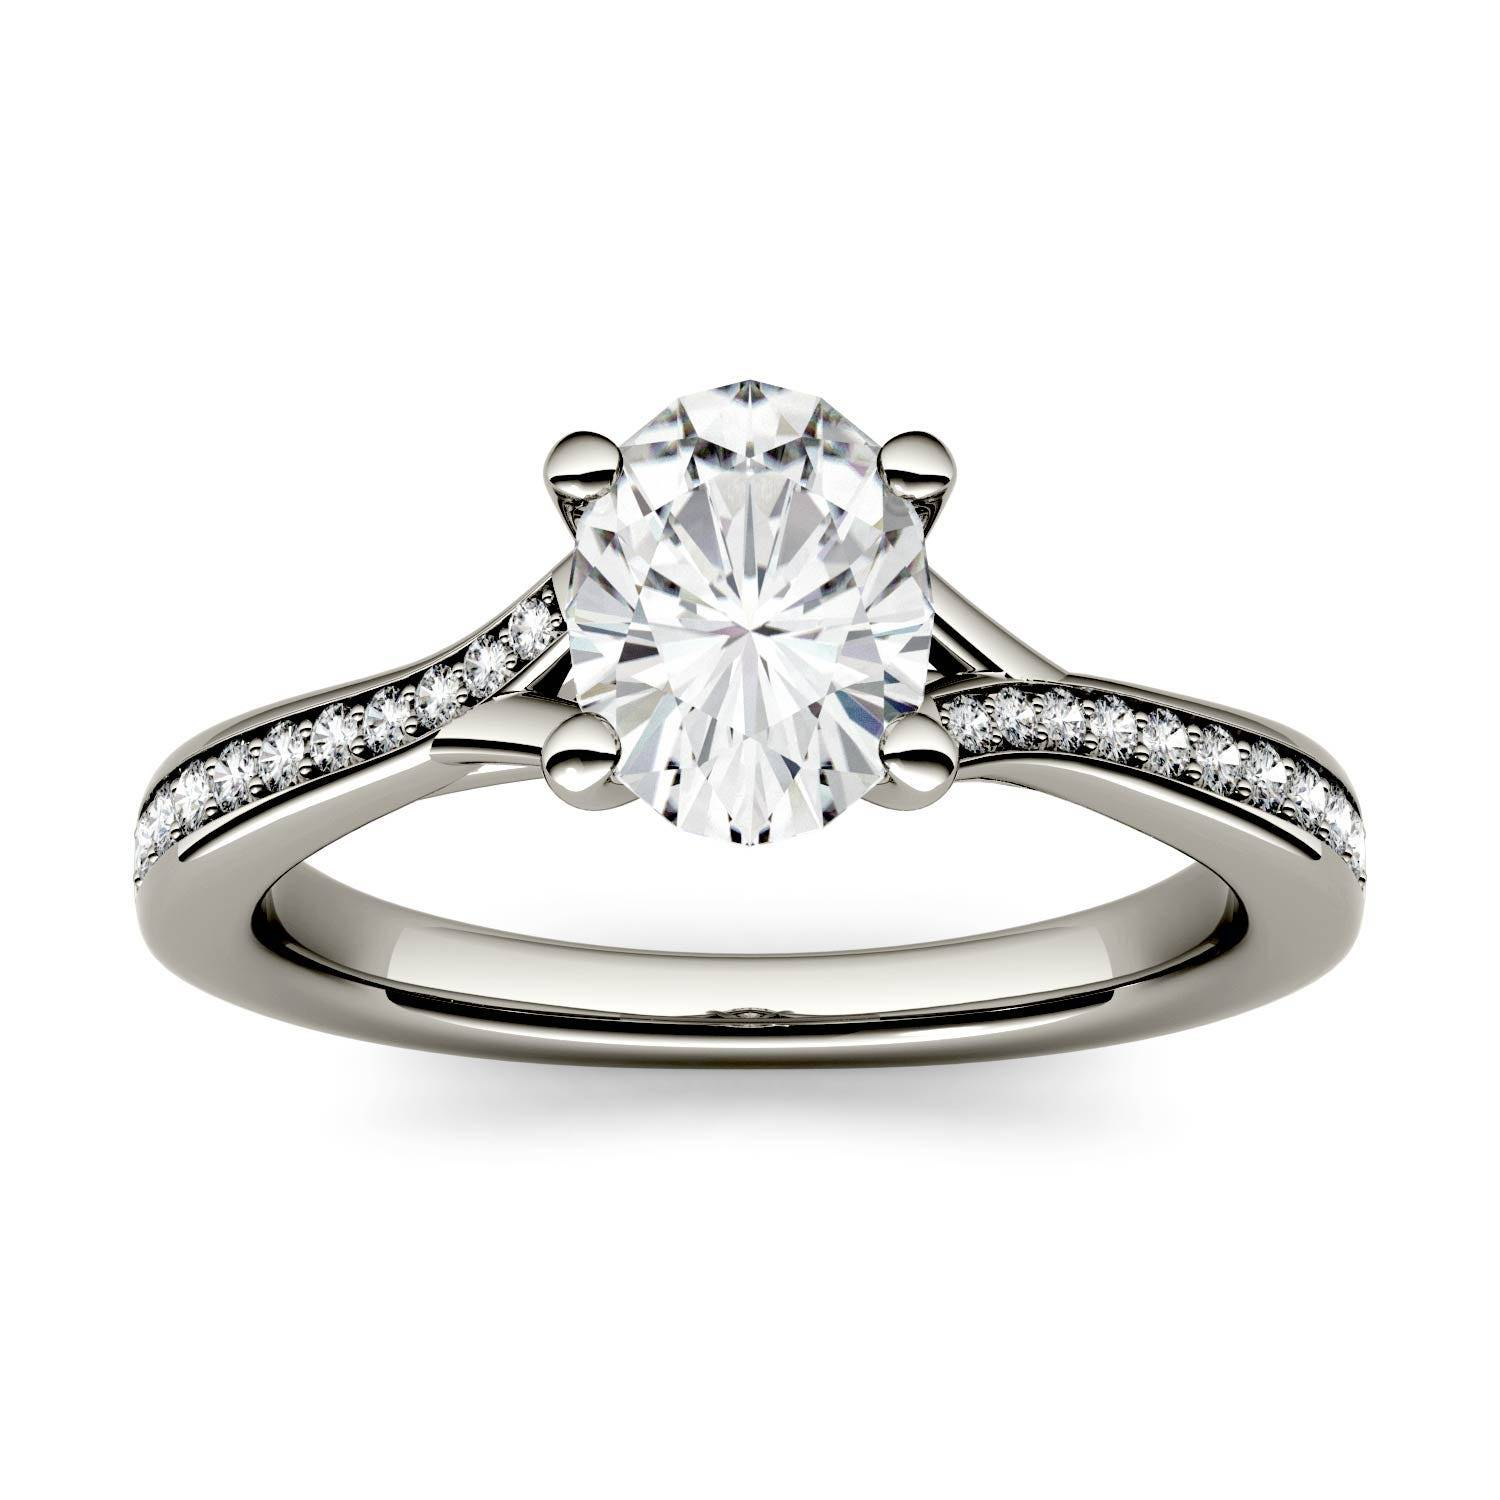 Charles & Colvard Solitaire with Side Accents Engagement Ring in 14K White Gold, Size: 7, 1.0CTW Oval Forever One - Colorless Moissanite Charles & Colvard  - White Gold - Size: 7